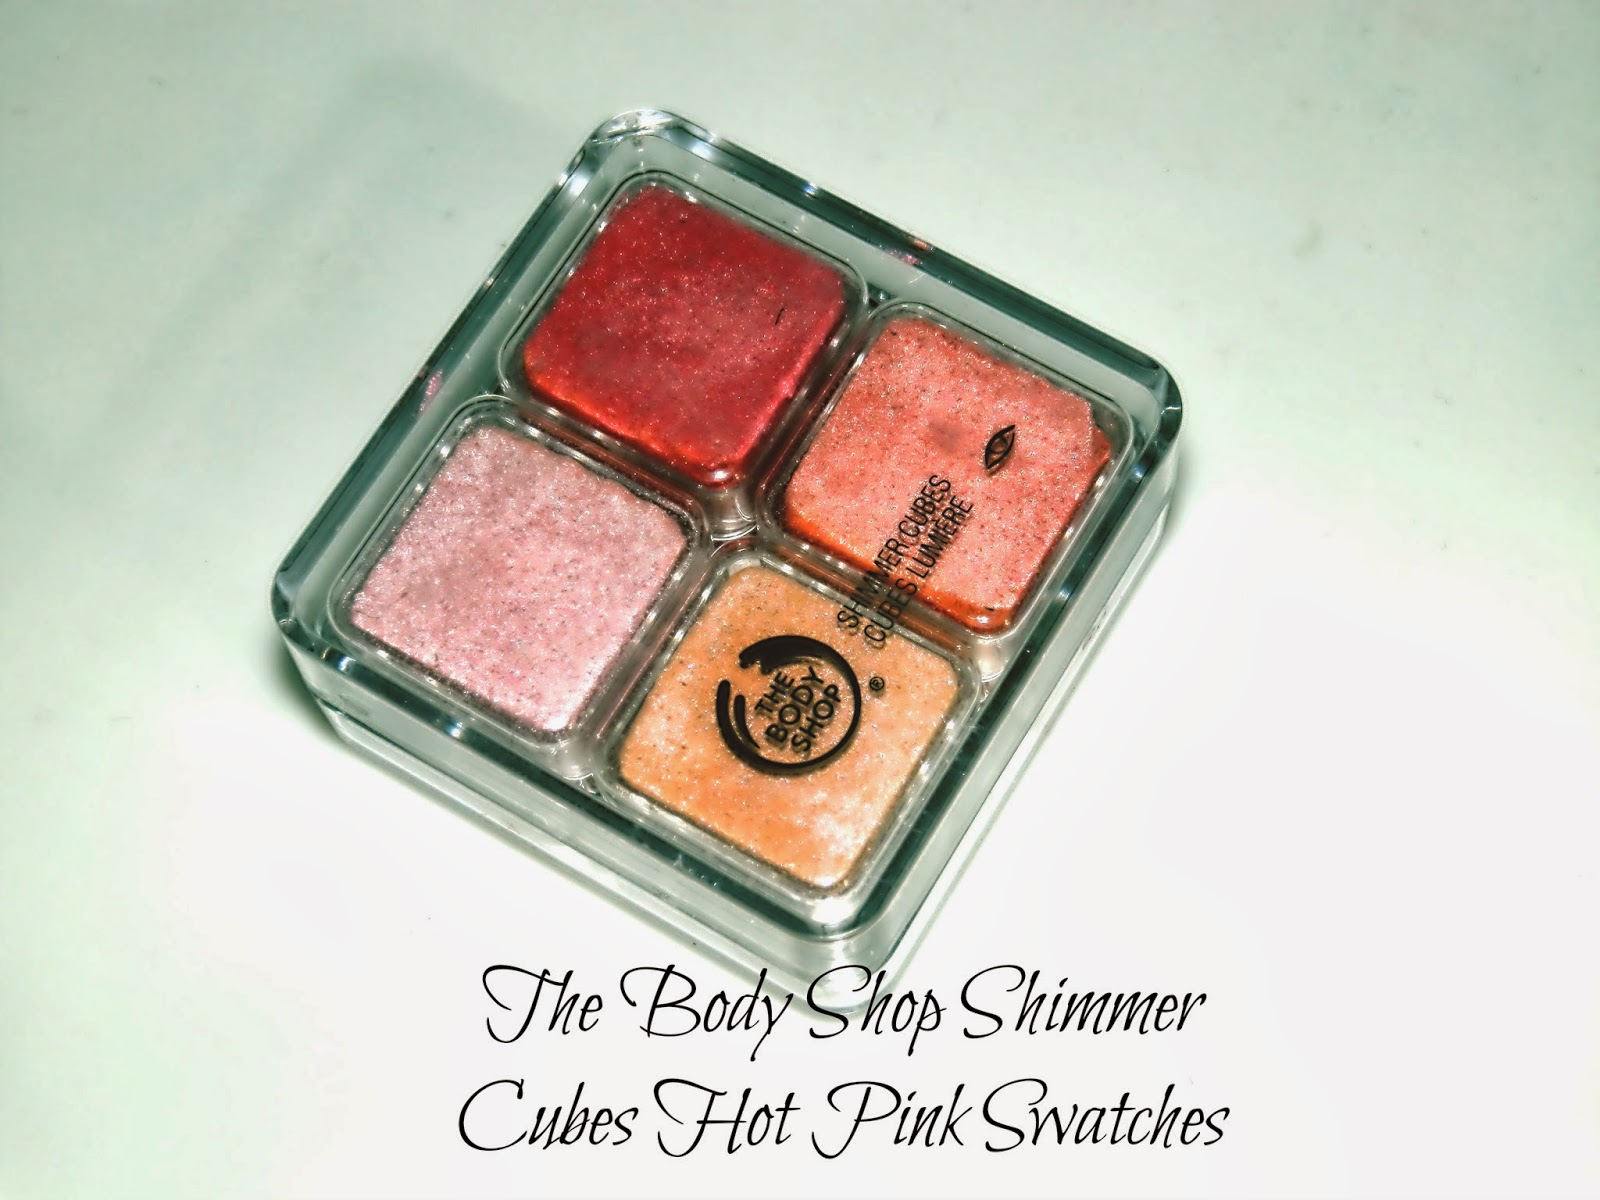 The Body Shop Shimmer Cubes Hot Pink Swatches